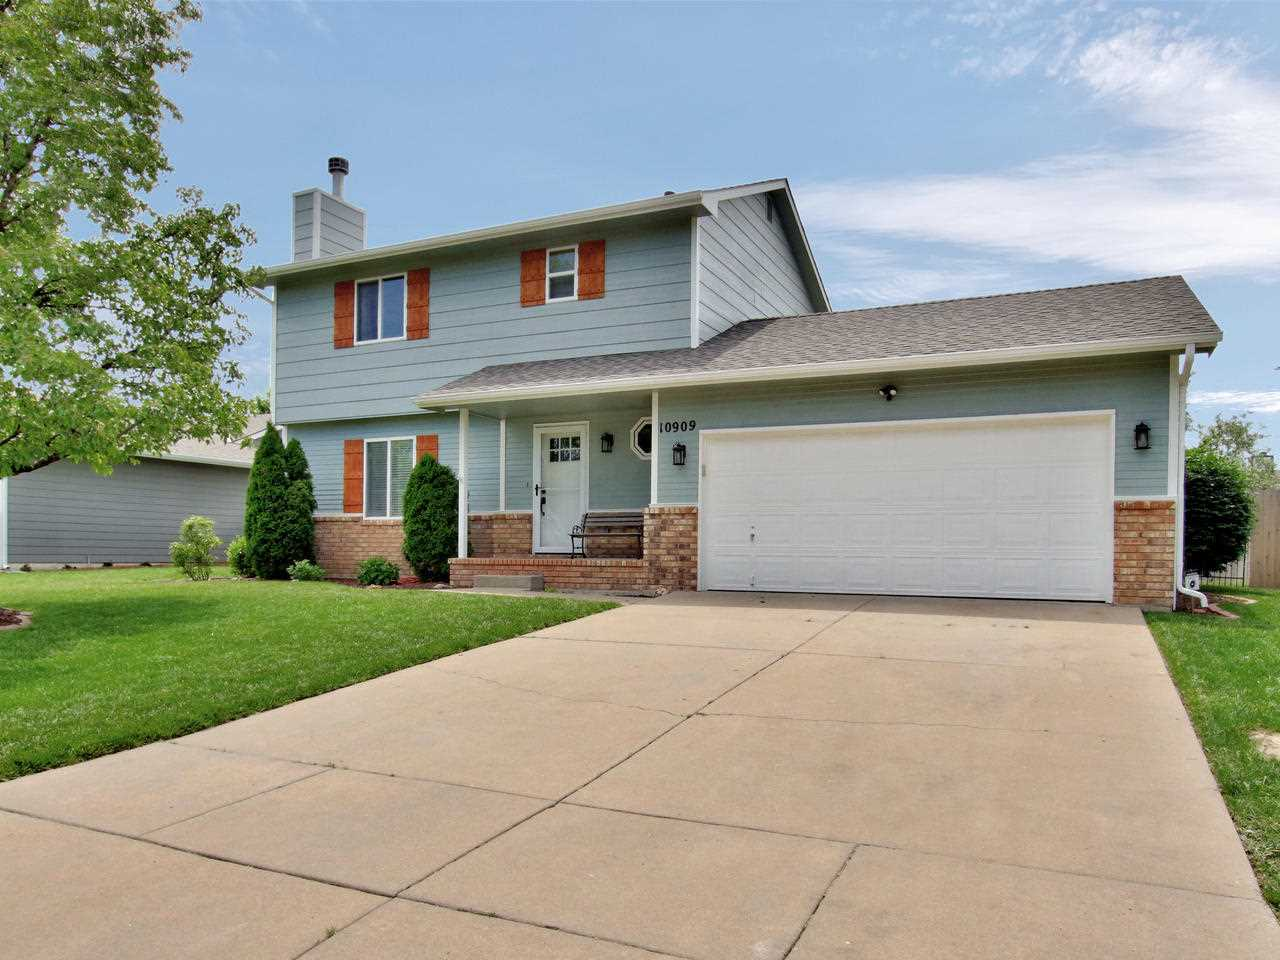 GORGEOUS CUSTOM REMODEL IN GODDARD SCHOOLS // 4 BEDROOMS, 2 1/2 BATHS // FINISHED BASEMENT // UPDATE